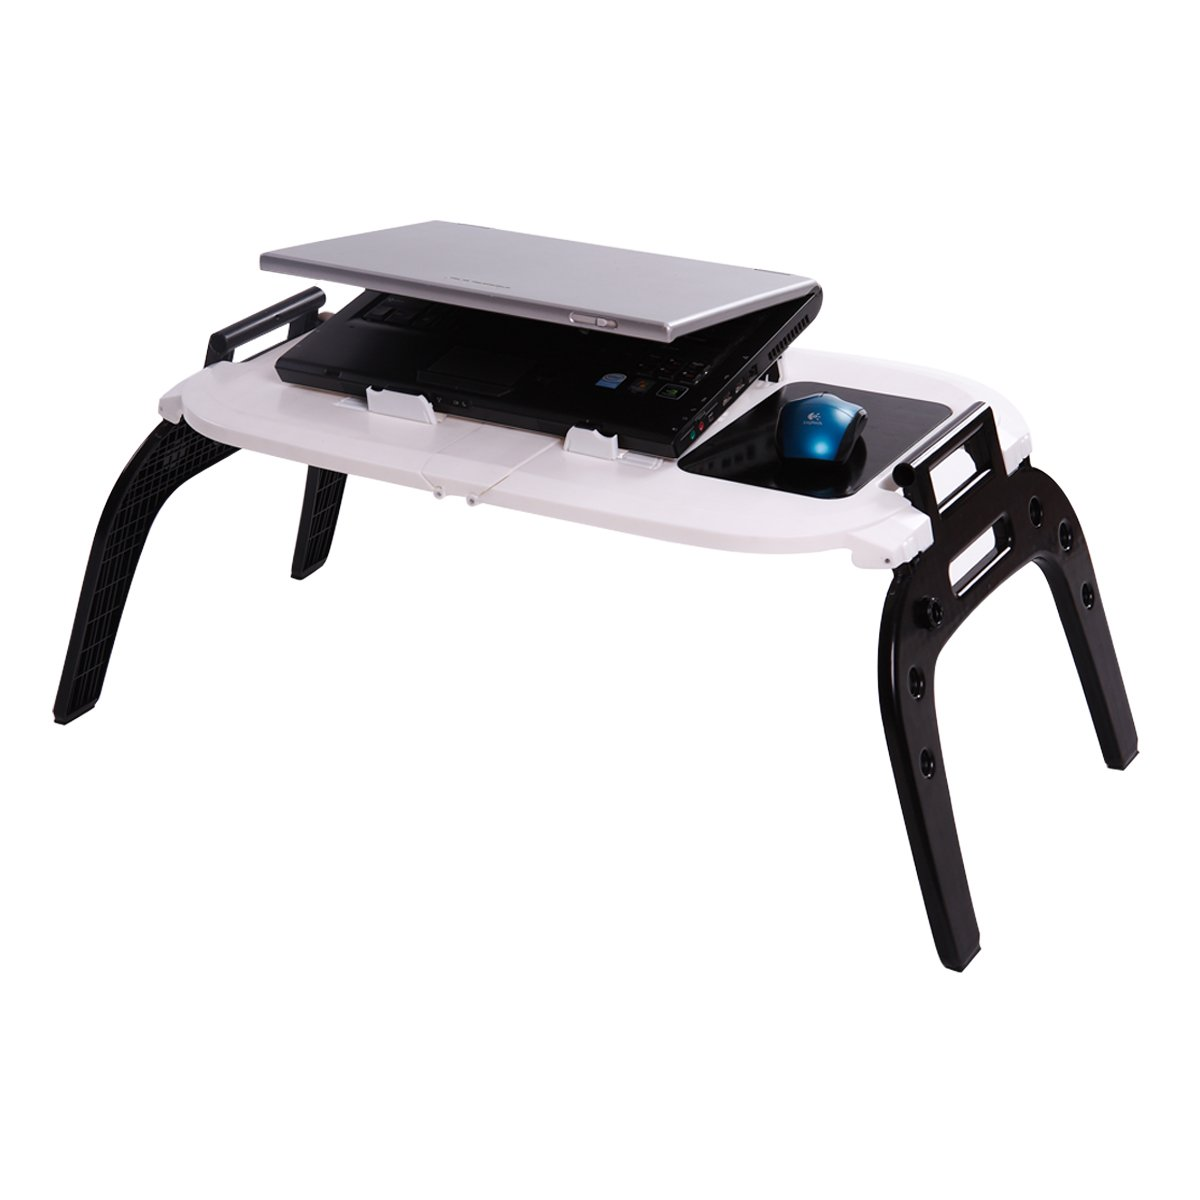 Etable Portable & Folding Laptop Table for Bed, with 2 Cooling Fans, Mouse Pad, Carrying Handle Fits Up to 17'' Laptop/Tablet PC for Using on Bed or Sofa, with Left-Handed or Right-Handed